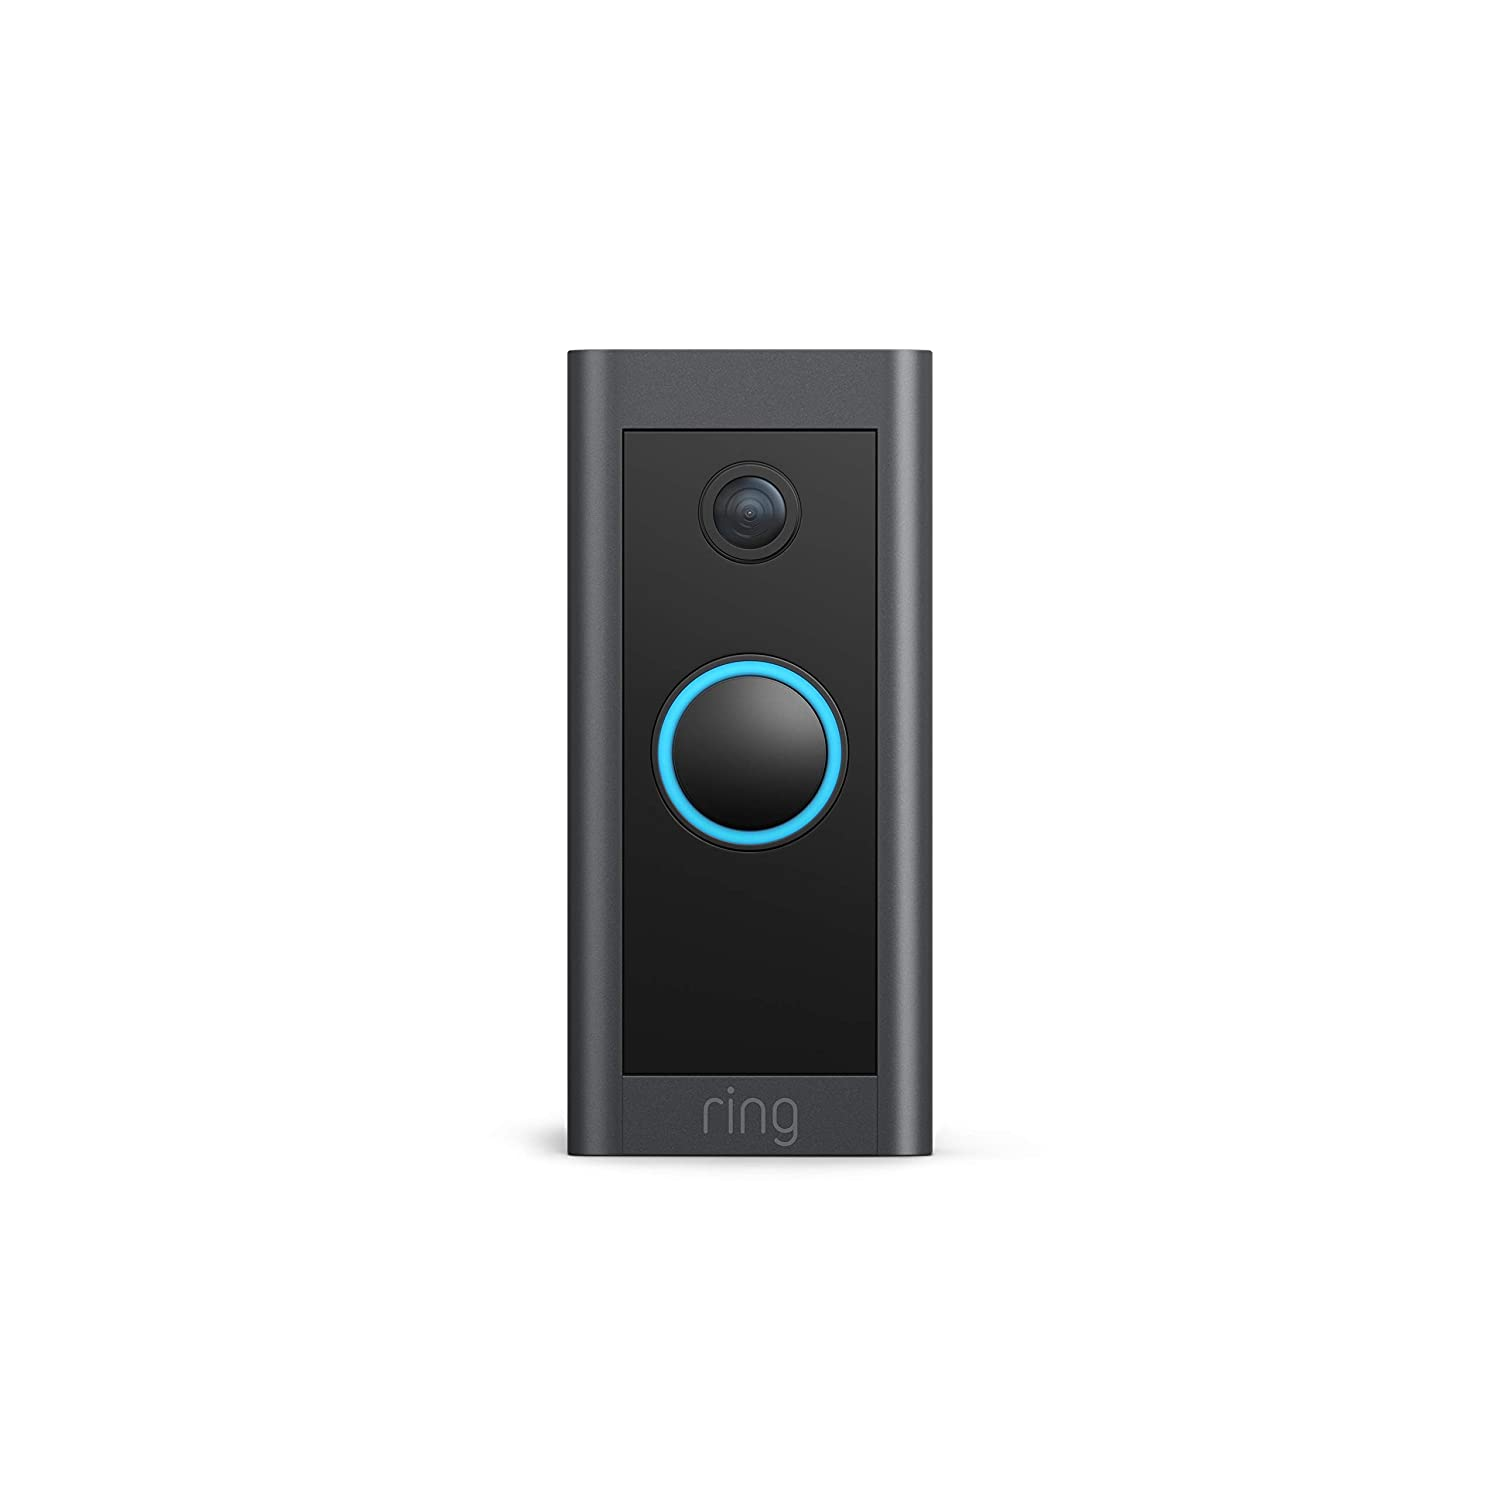 New Ring Doorbell on the Block: The Ring Video Doorbell Wired